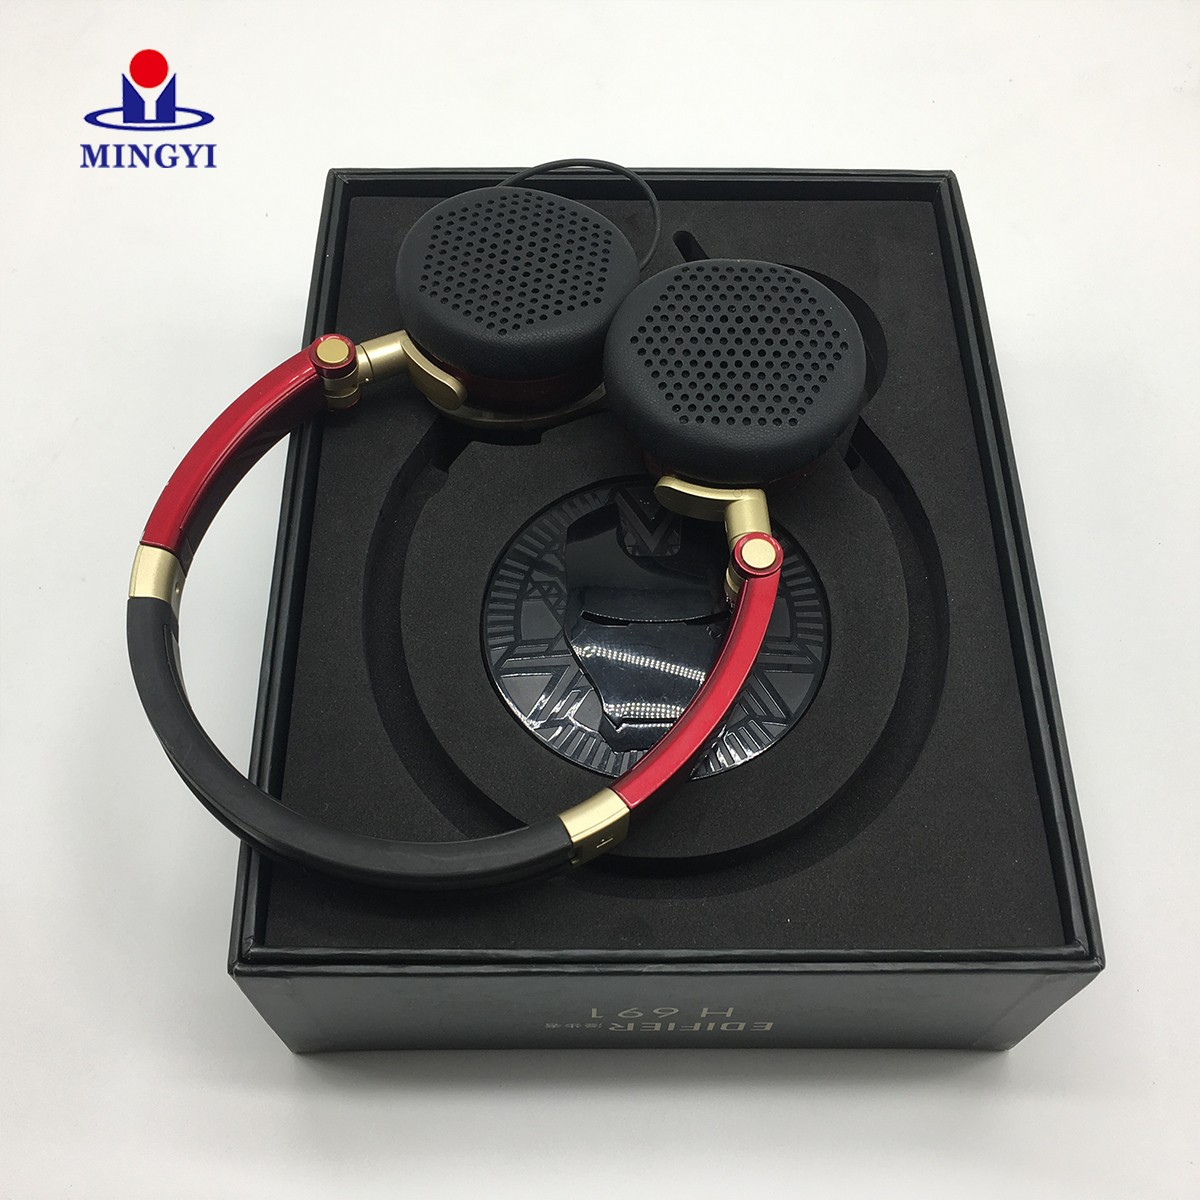 news-New custom design Iron man style headphones packaging box-Mingyi Printing-img-3